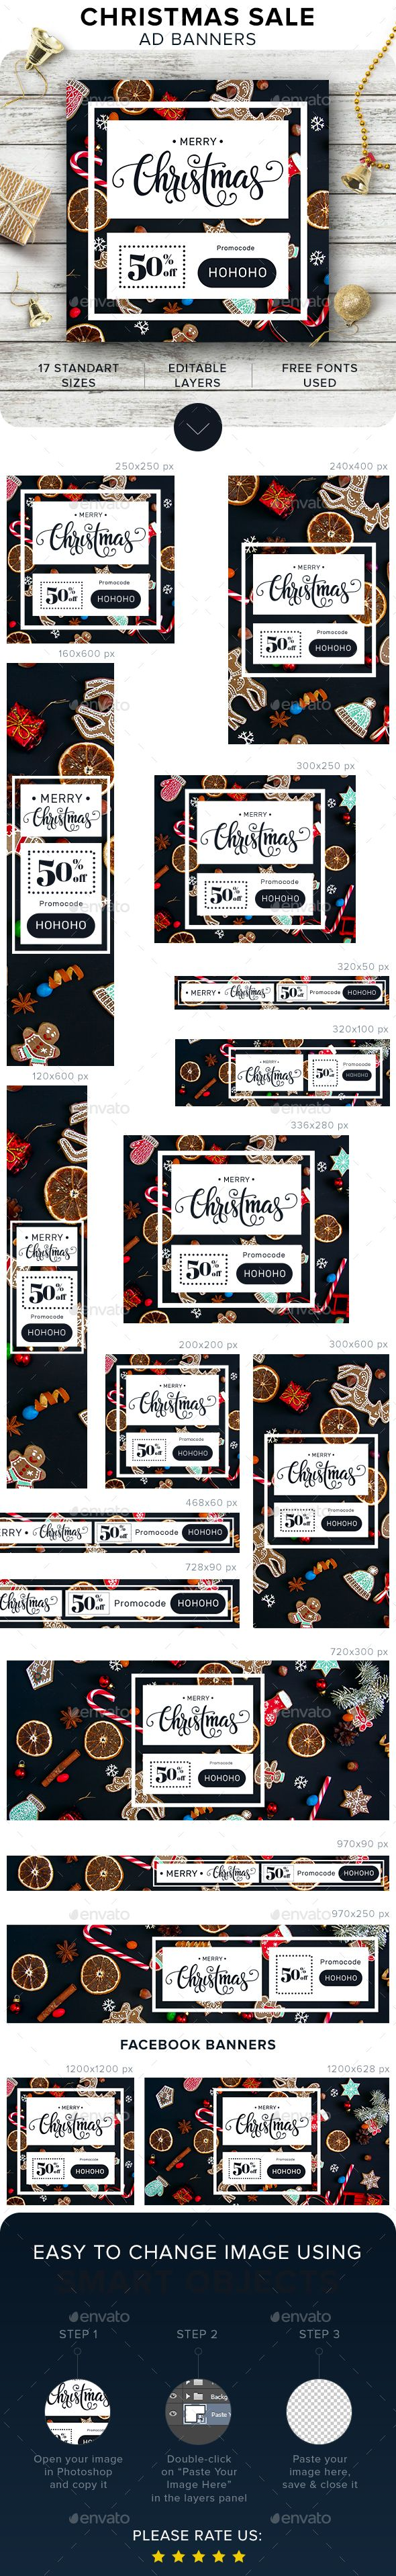 Design google banner ads - Merry Christmas Banners